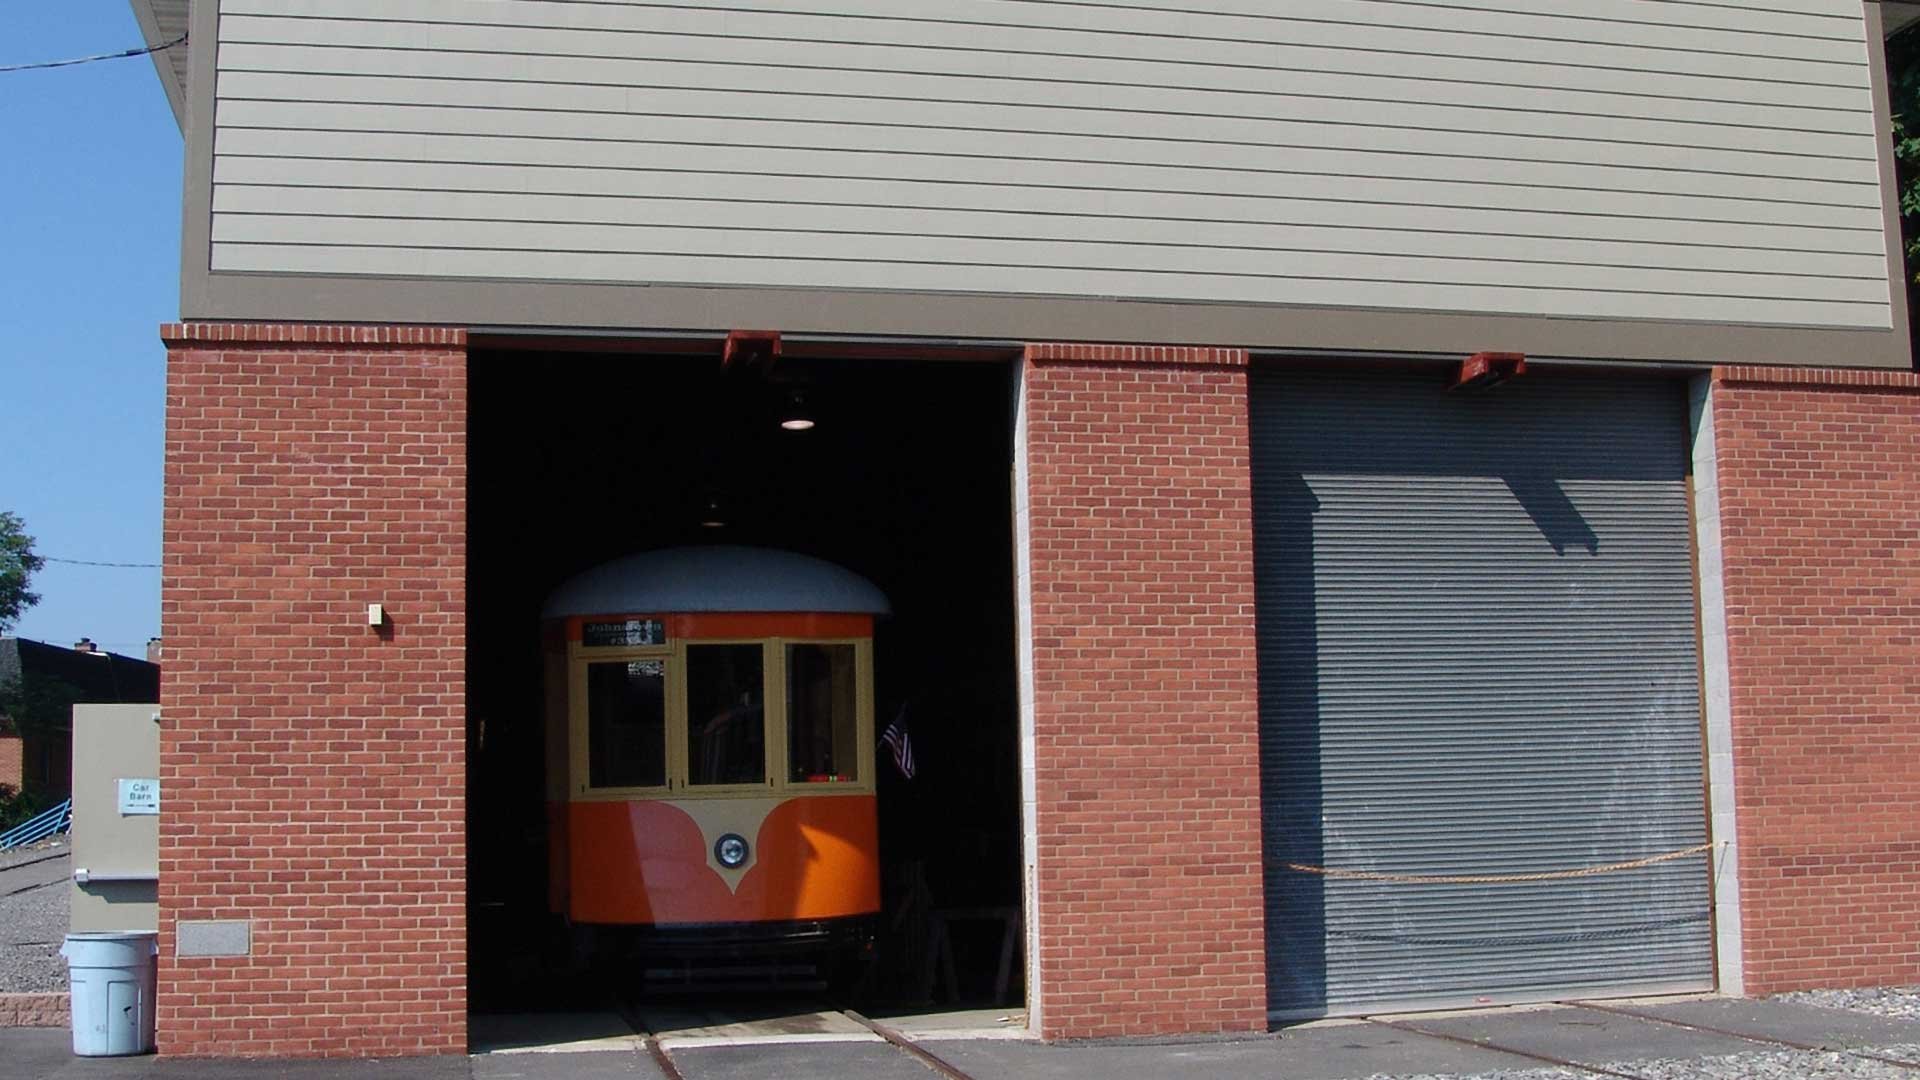 North side of the Kingston Trolley Museum after renovation